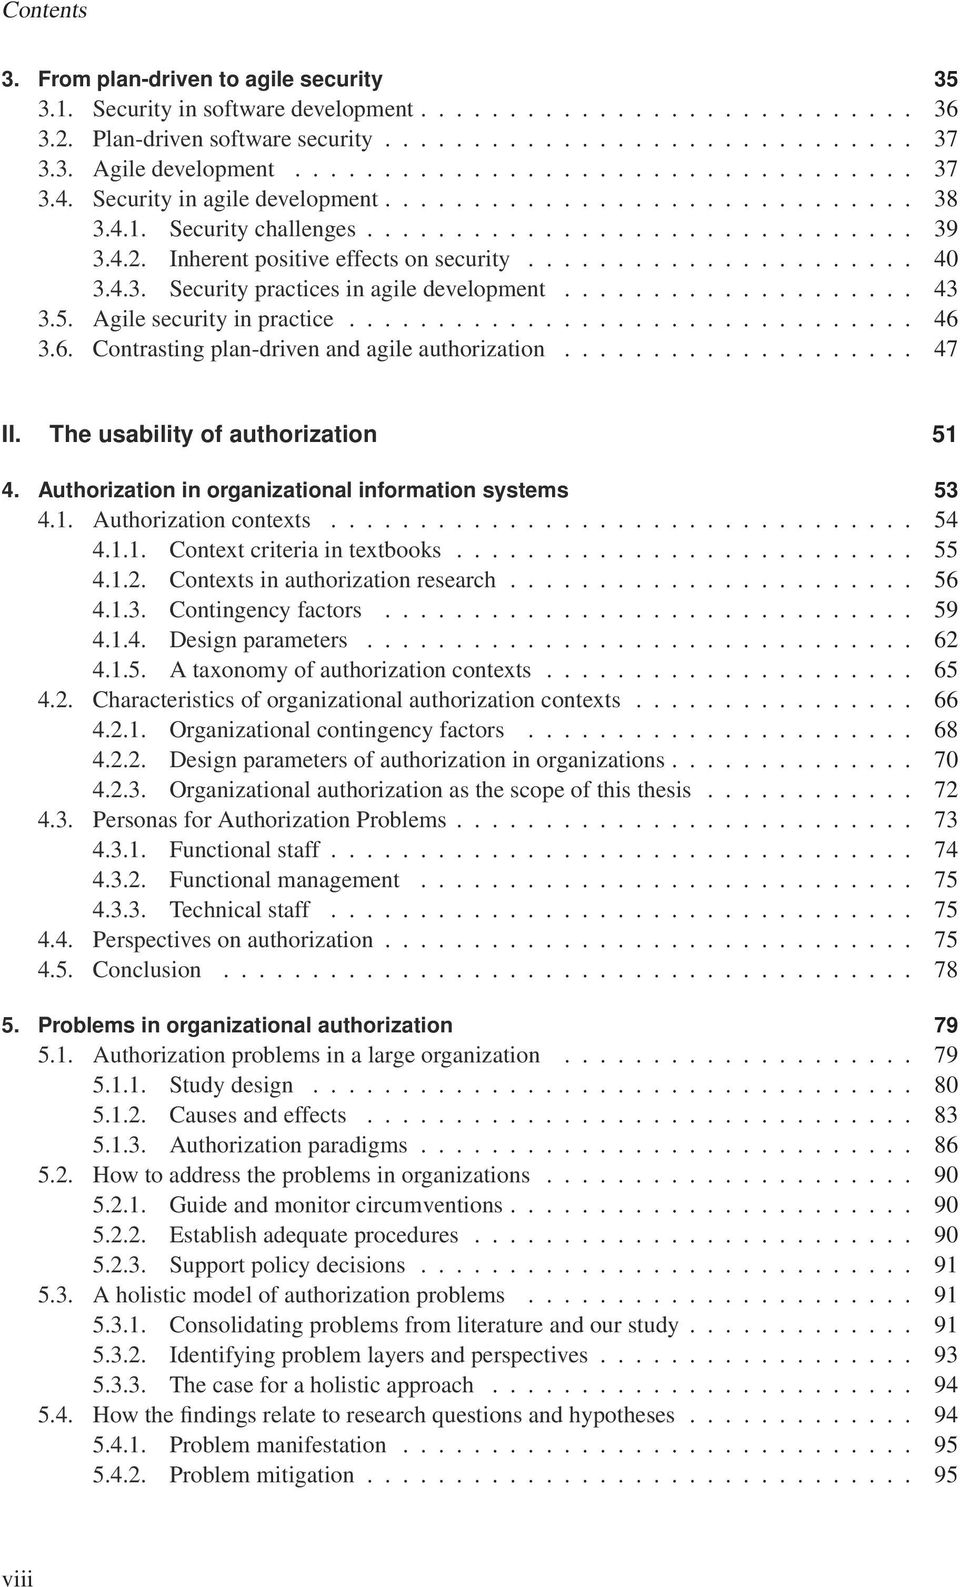 3.6. Contrasting plan-driven and agile authorization... 47 II. The usability of authorization 51 4. Authorization in organizational information systems 53 4.1. Authorization contexts... 54 4.1.1. Context criteria in textbooks.